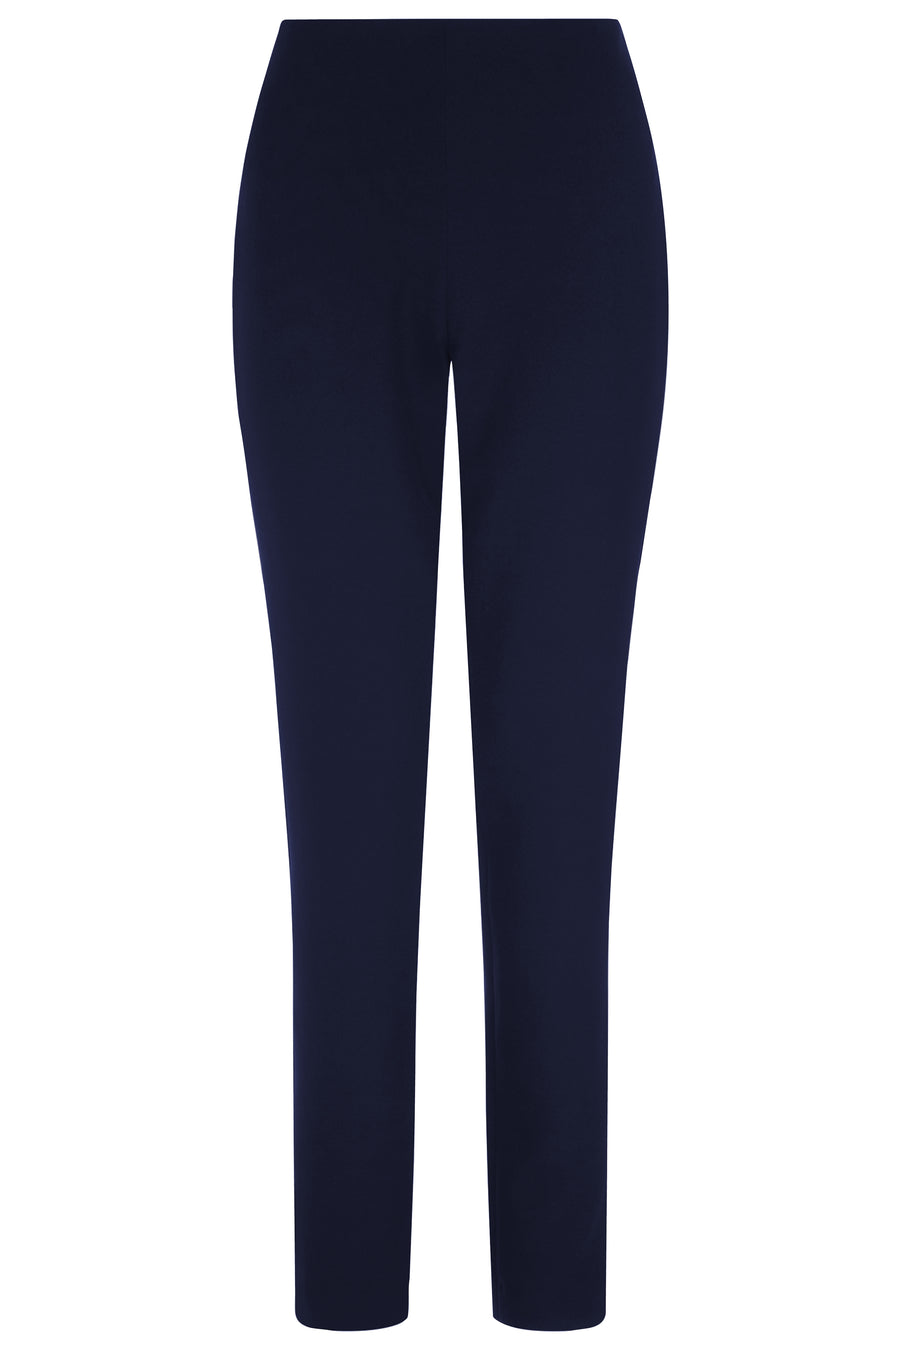 Brunswick Navy Suiting Trousers